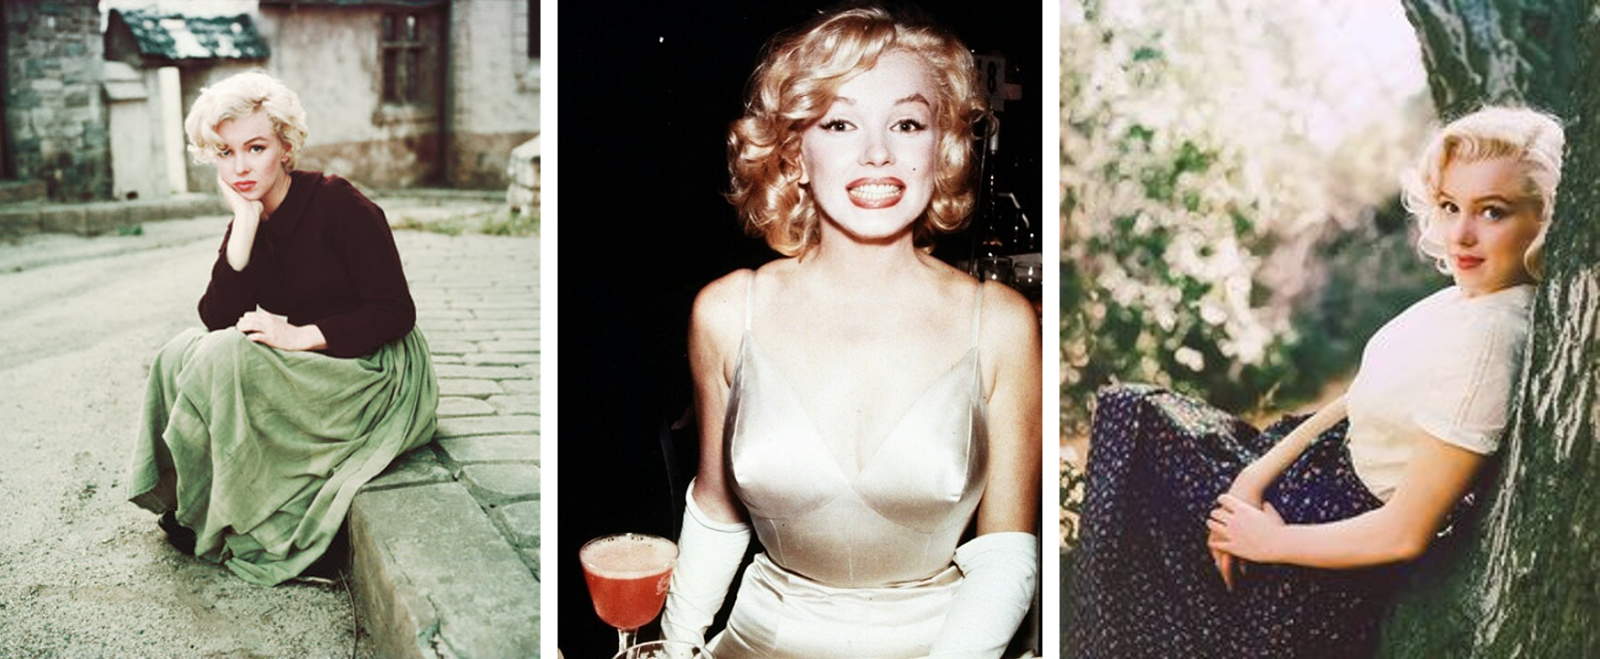 Pictures of Marilyn Monroe modelling, and smiling